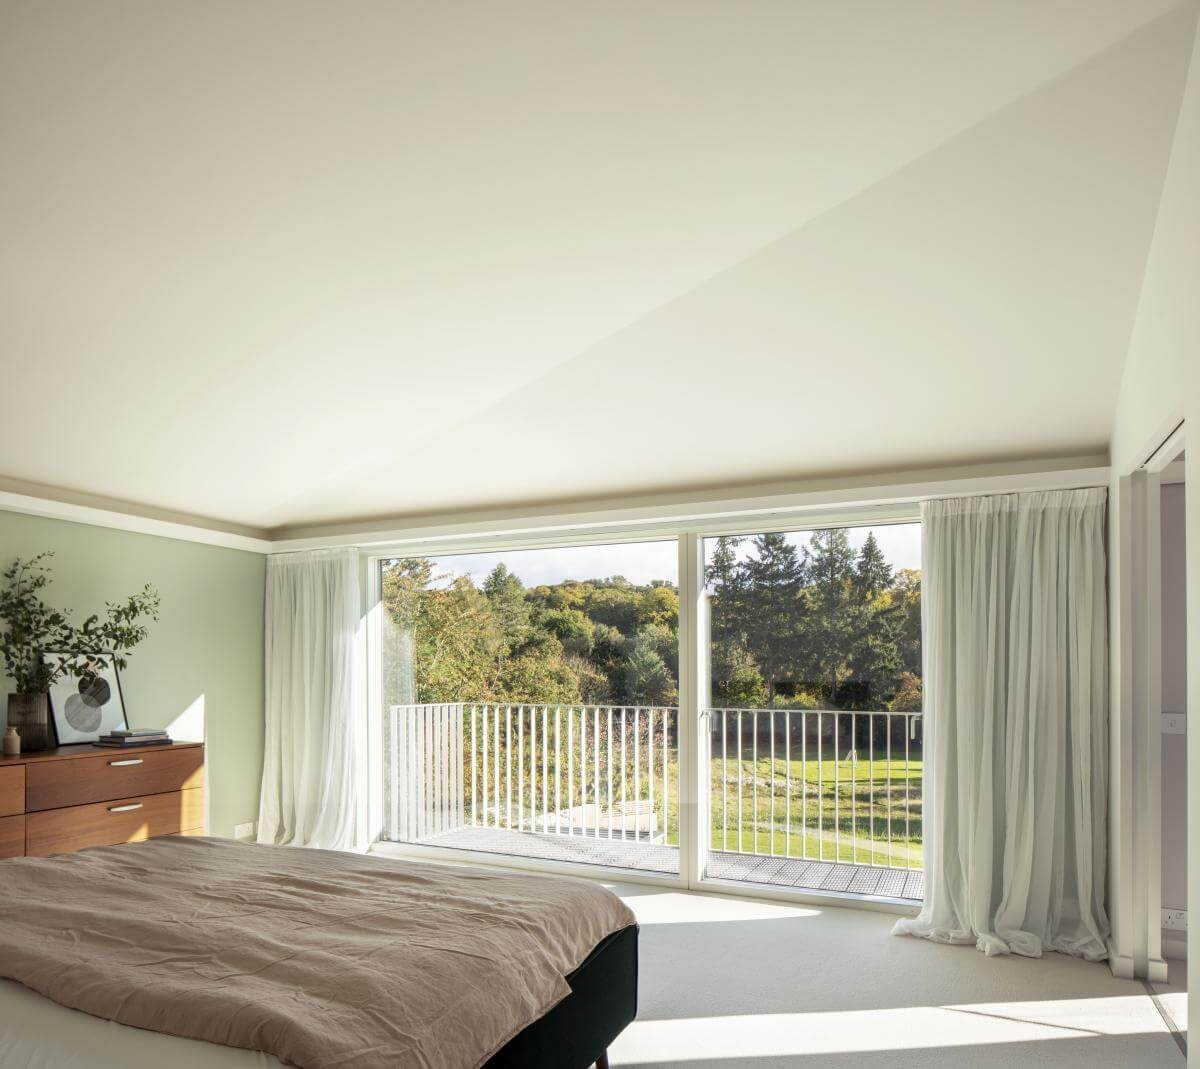 copy of 28 cherry tree house master bedroom and balcony guttfield architecture will scott